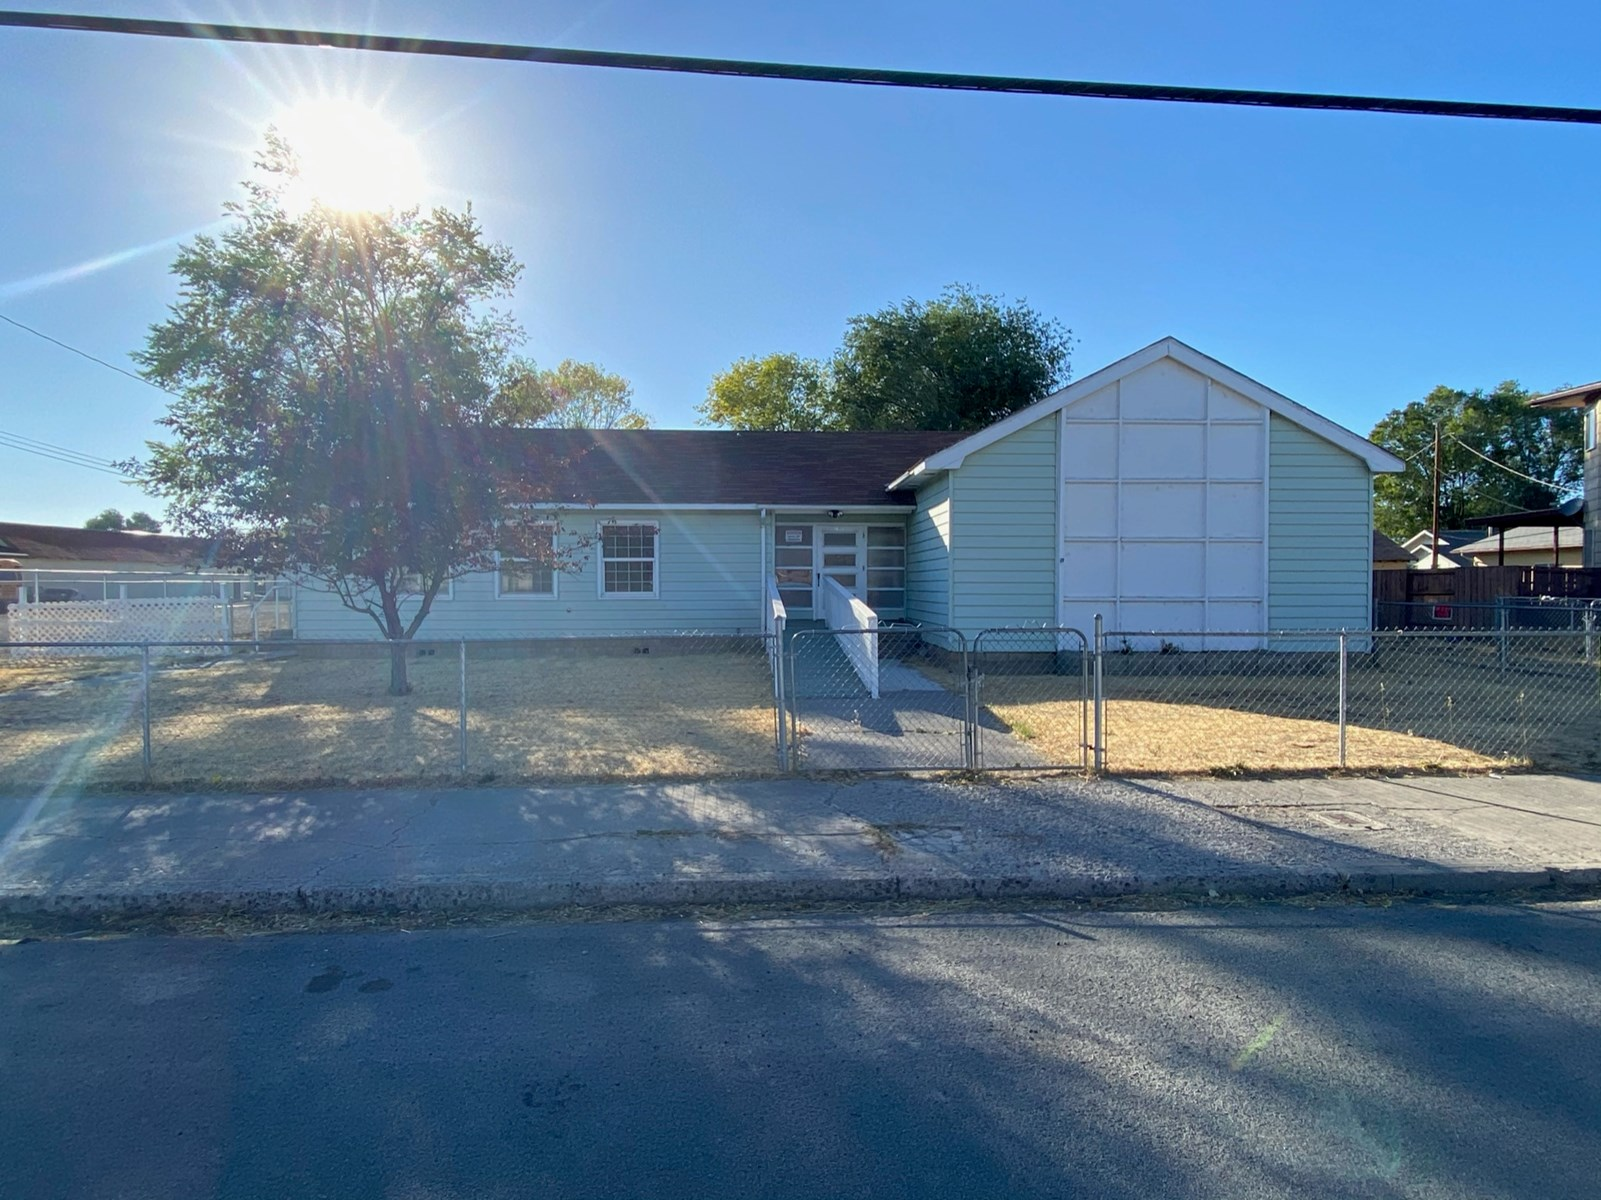 Home for Sale in Rural, Alturas, Ca